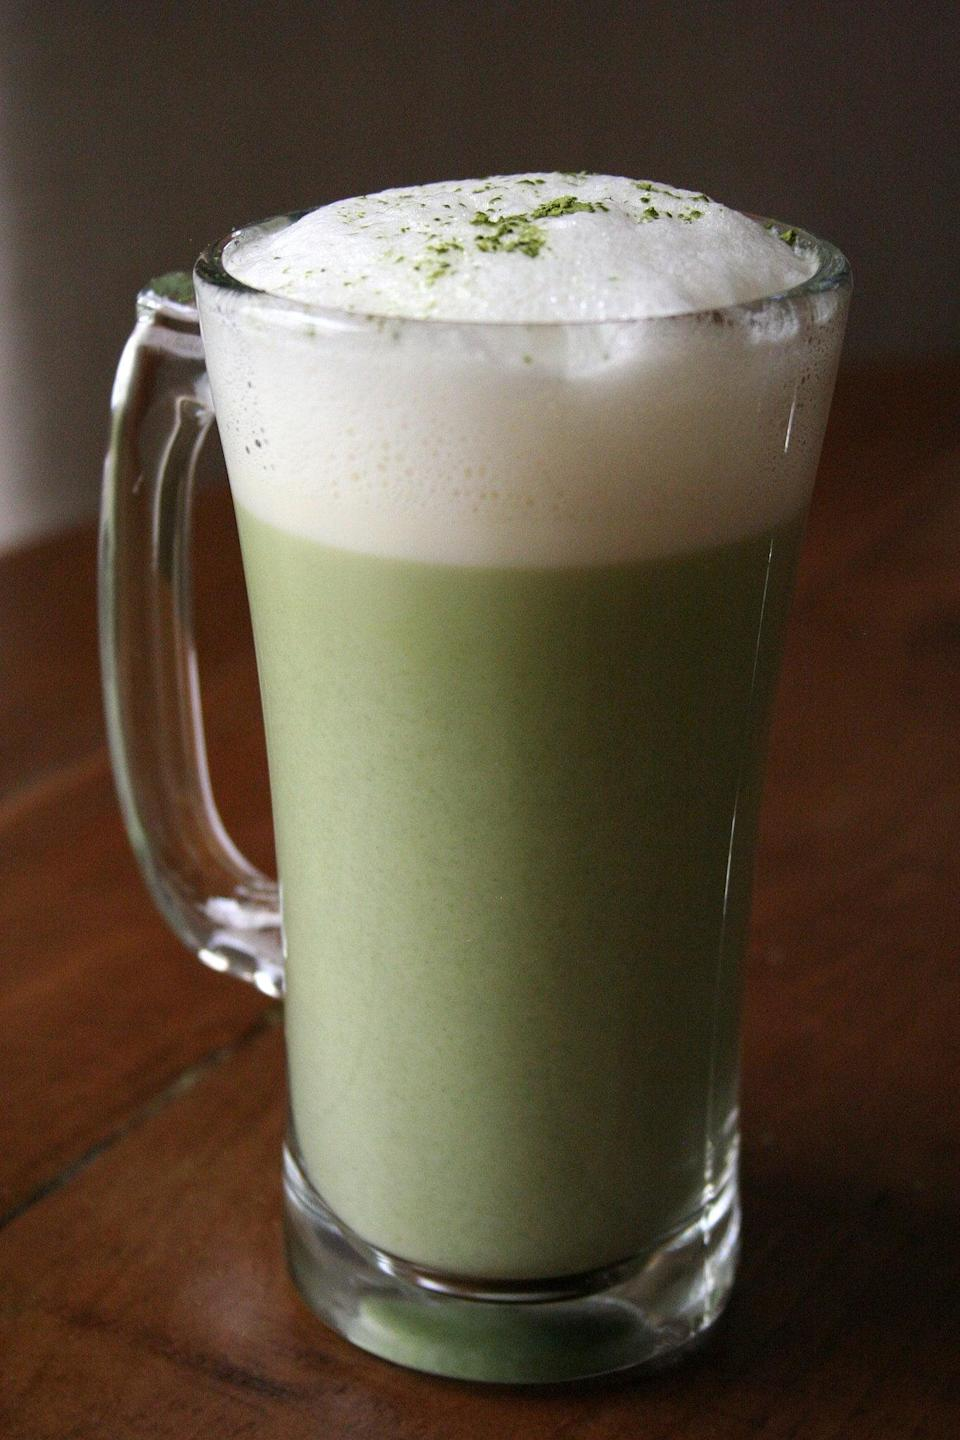 """<p>If matcha is your weakness, you'll swoon when you make this rich green tea. The creamy matcha is sweetened just enough to make it a bold (yet bright!) treat for your taste buds.</p> <p><strong>Original Starbucks Drink:</strong> <a href=""""http://www.starbucks.com/menu/drinks/tea/green-tea-latte"""" class=""""link rapid-noclick-resp"""" rel=""""nofollow noopener"""" target=""""_blank"""" data-ylk=""""slk:matcha green tea latte"""">matcha green tea latte</a></p> <p><strong>Homemade Version:</strong> <a href=""""https://www.popsugar.com/food/How-Make-Matcha-Tea-24559867"""" class=""""link rapid-noclick-resp"""" rel=""""nofollow noopener"""" target=""""_blank"""" data-ylk=""""slk:matcha green tea latte"""">matcha green tea latte</a></p>"""